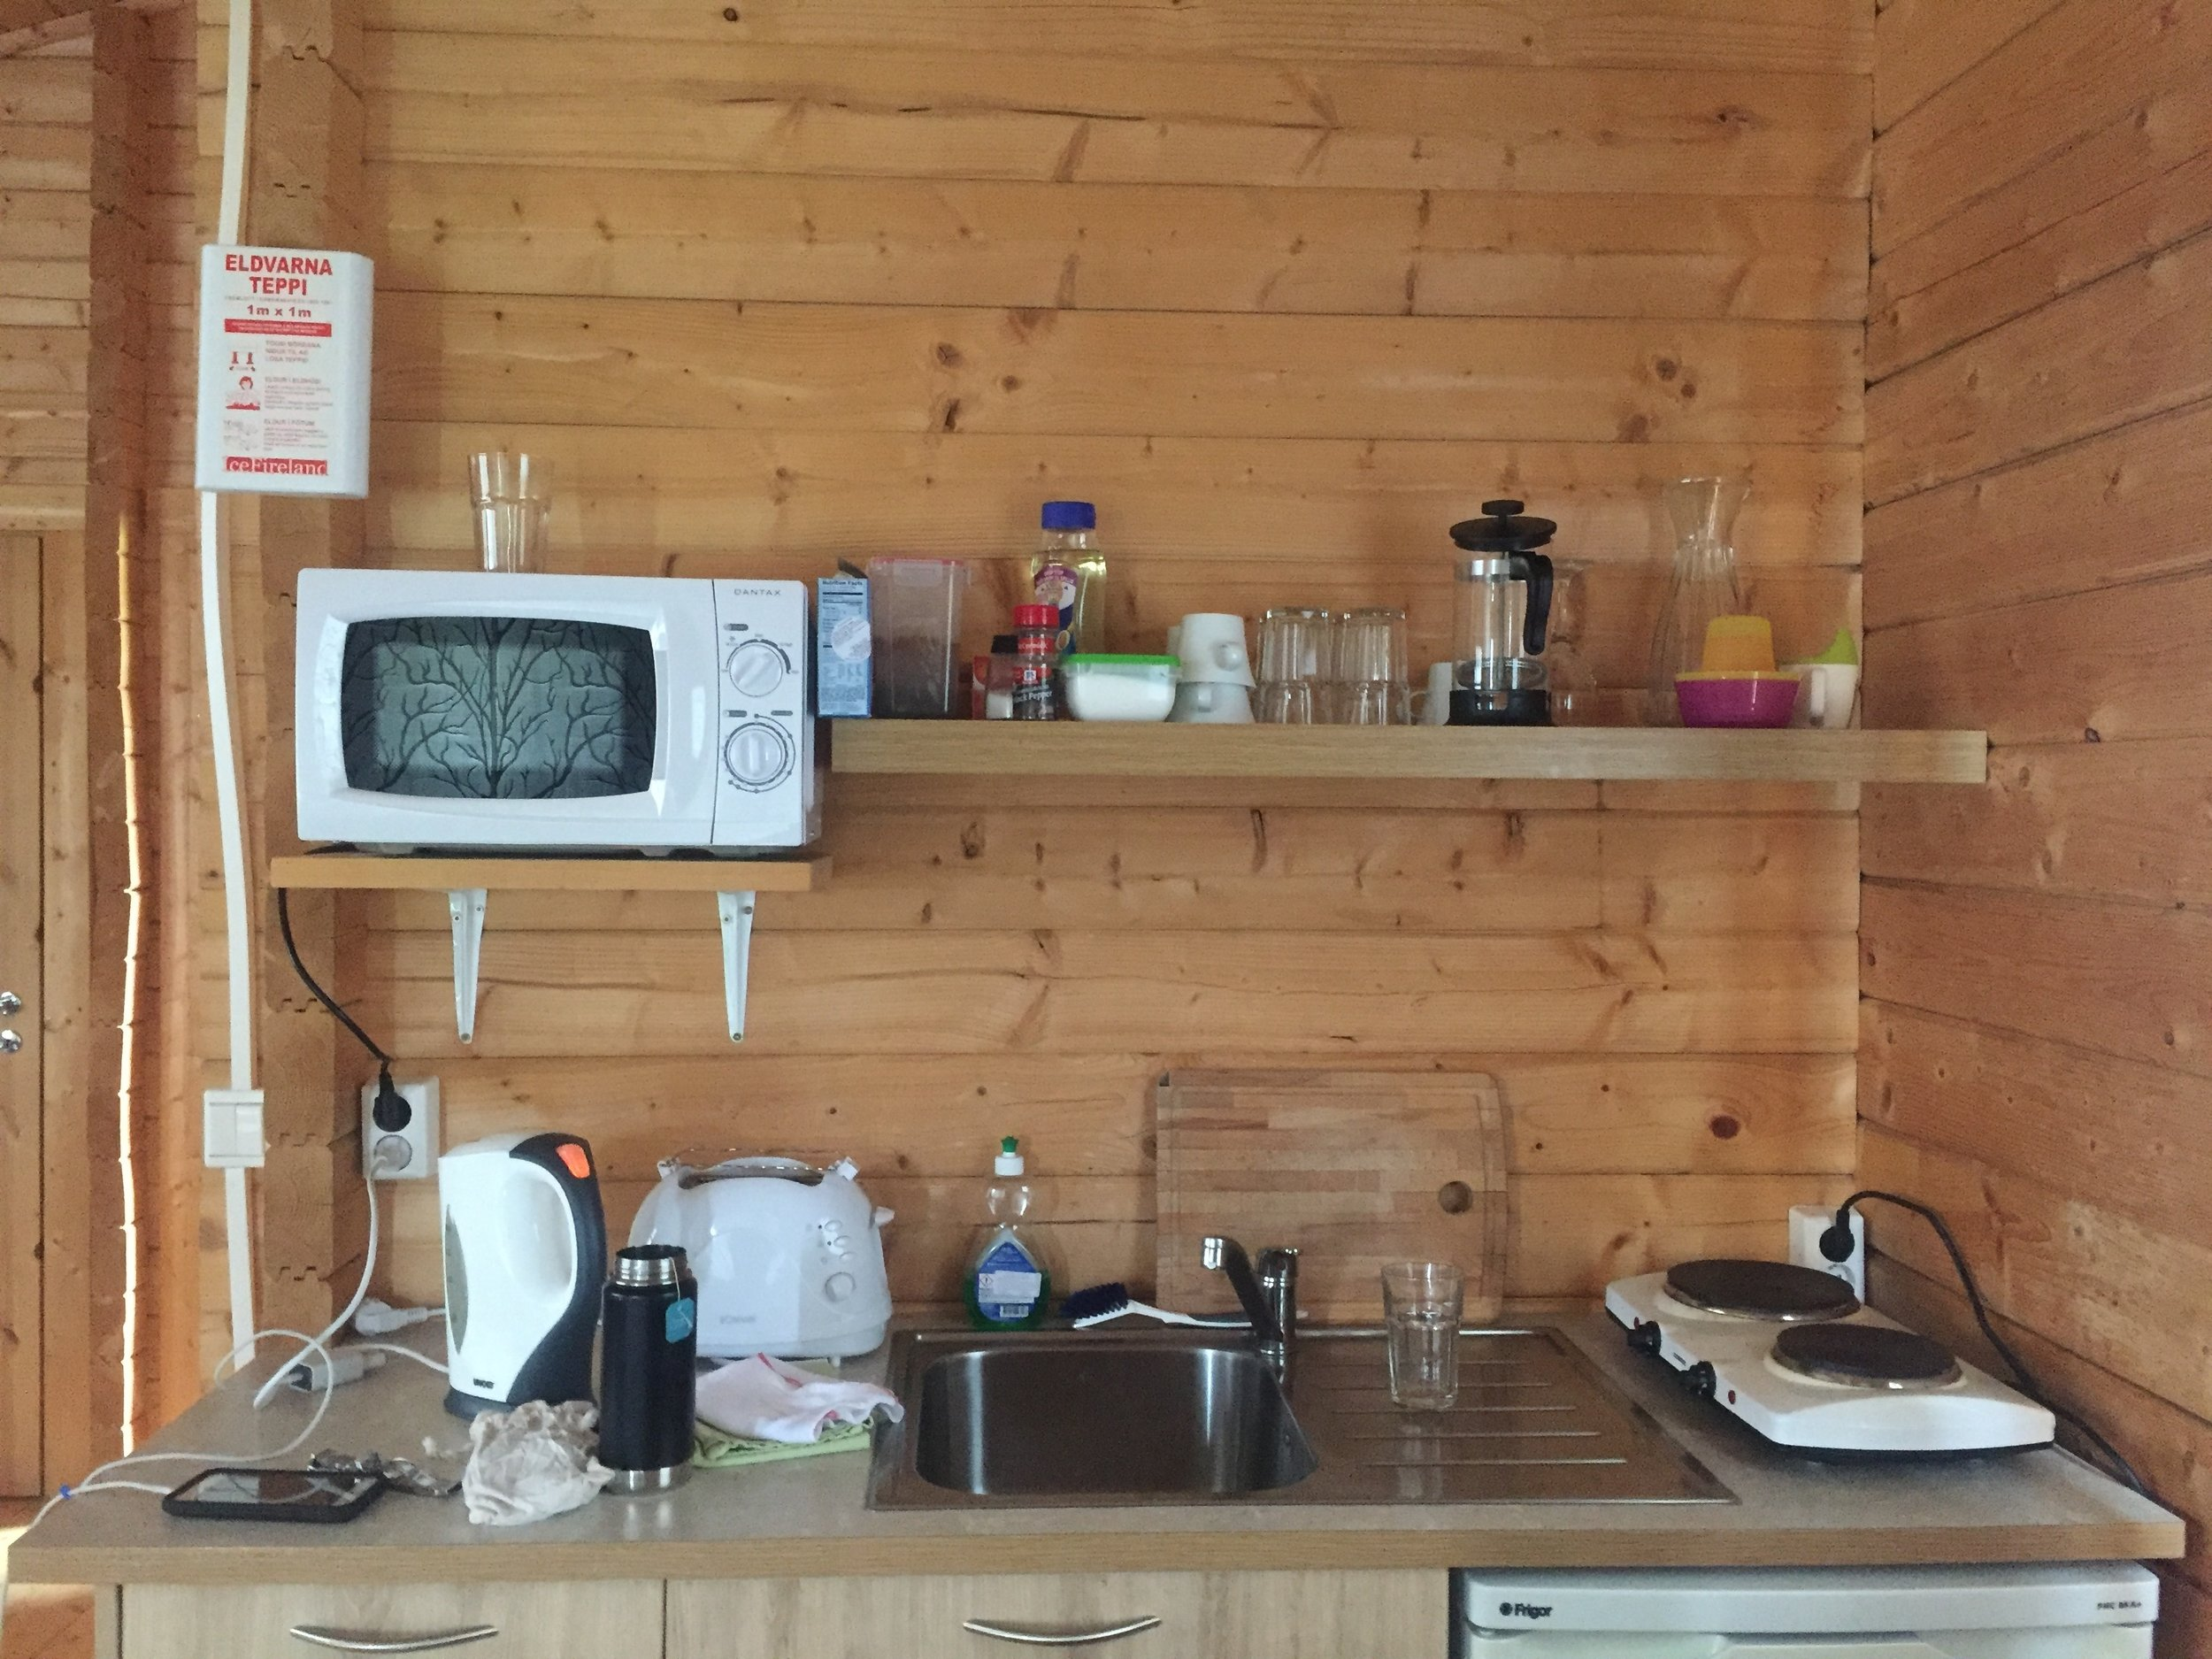 Small kitchen at Bragdavillir Cottages equipped with microwave, stove, hot water, French press and toaster.